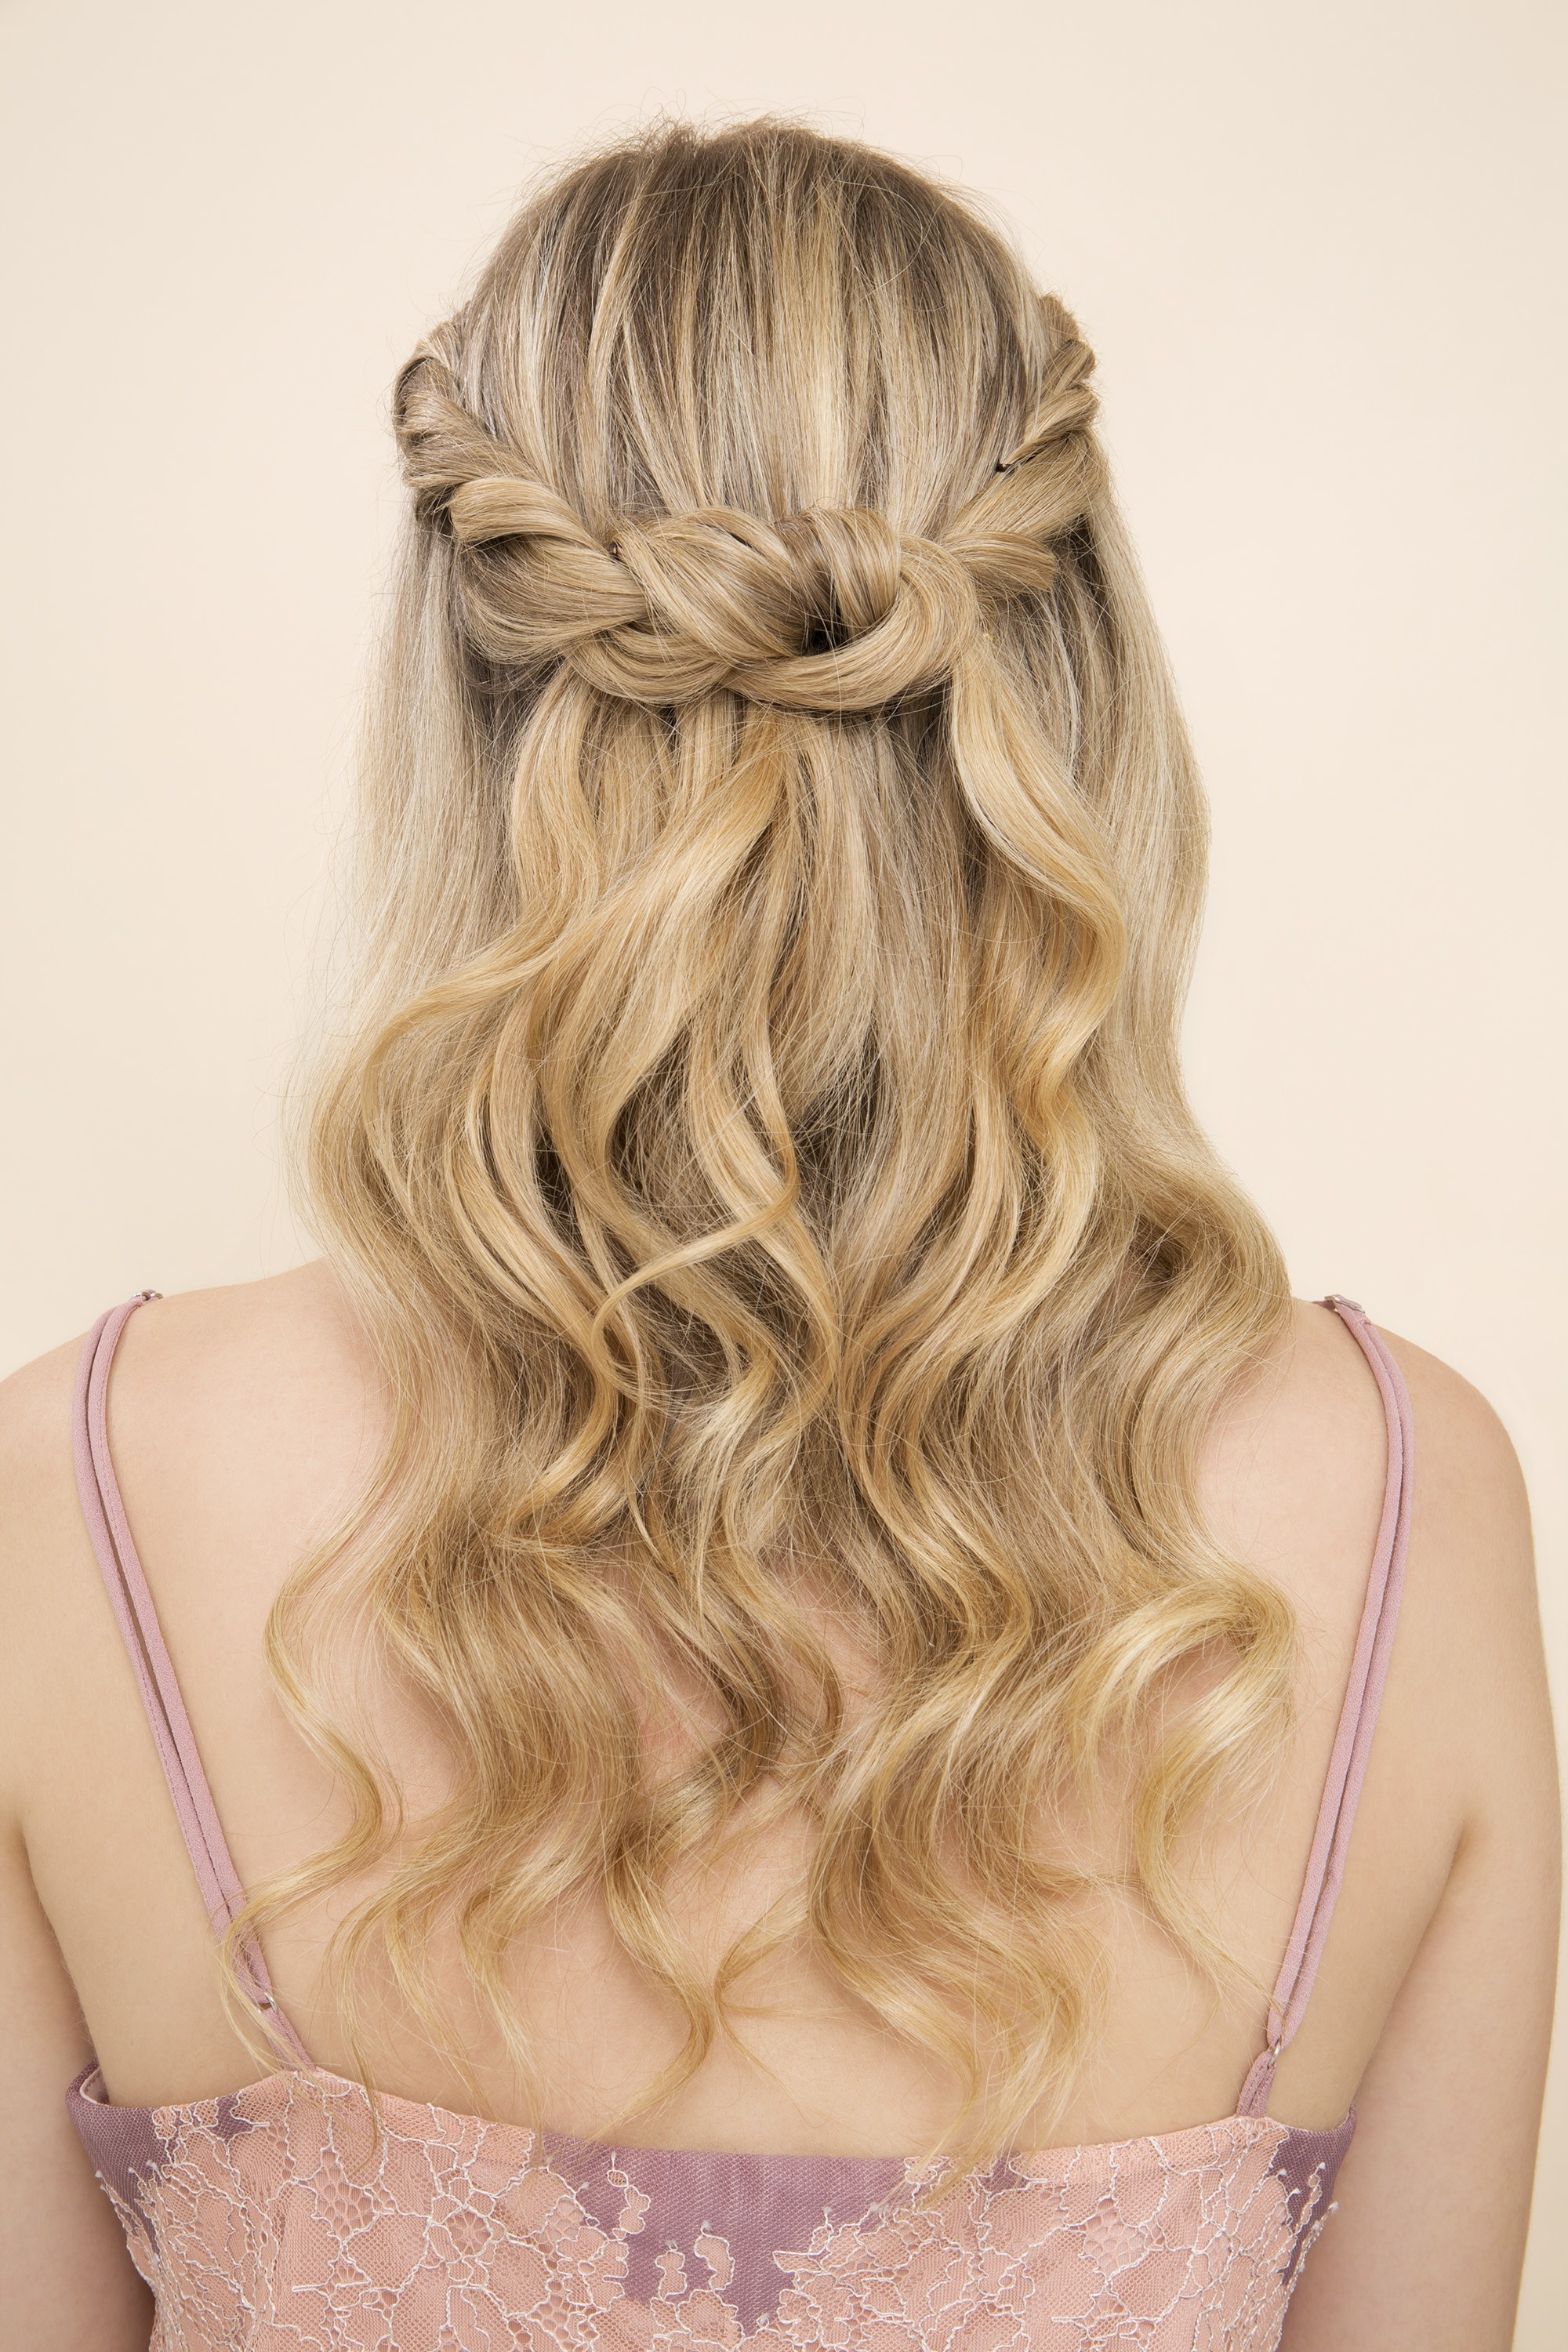 30 Stunning Half Up, Half Down Prom Hairstyles To Copy (View 7 of 20)